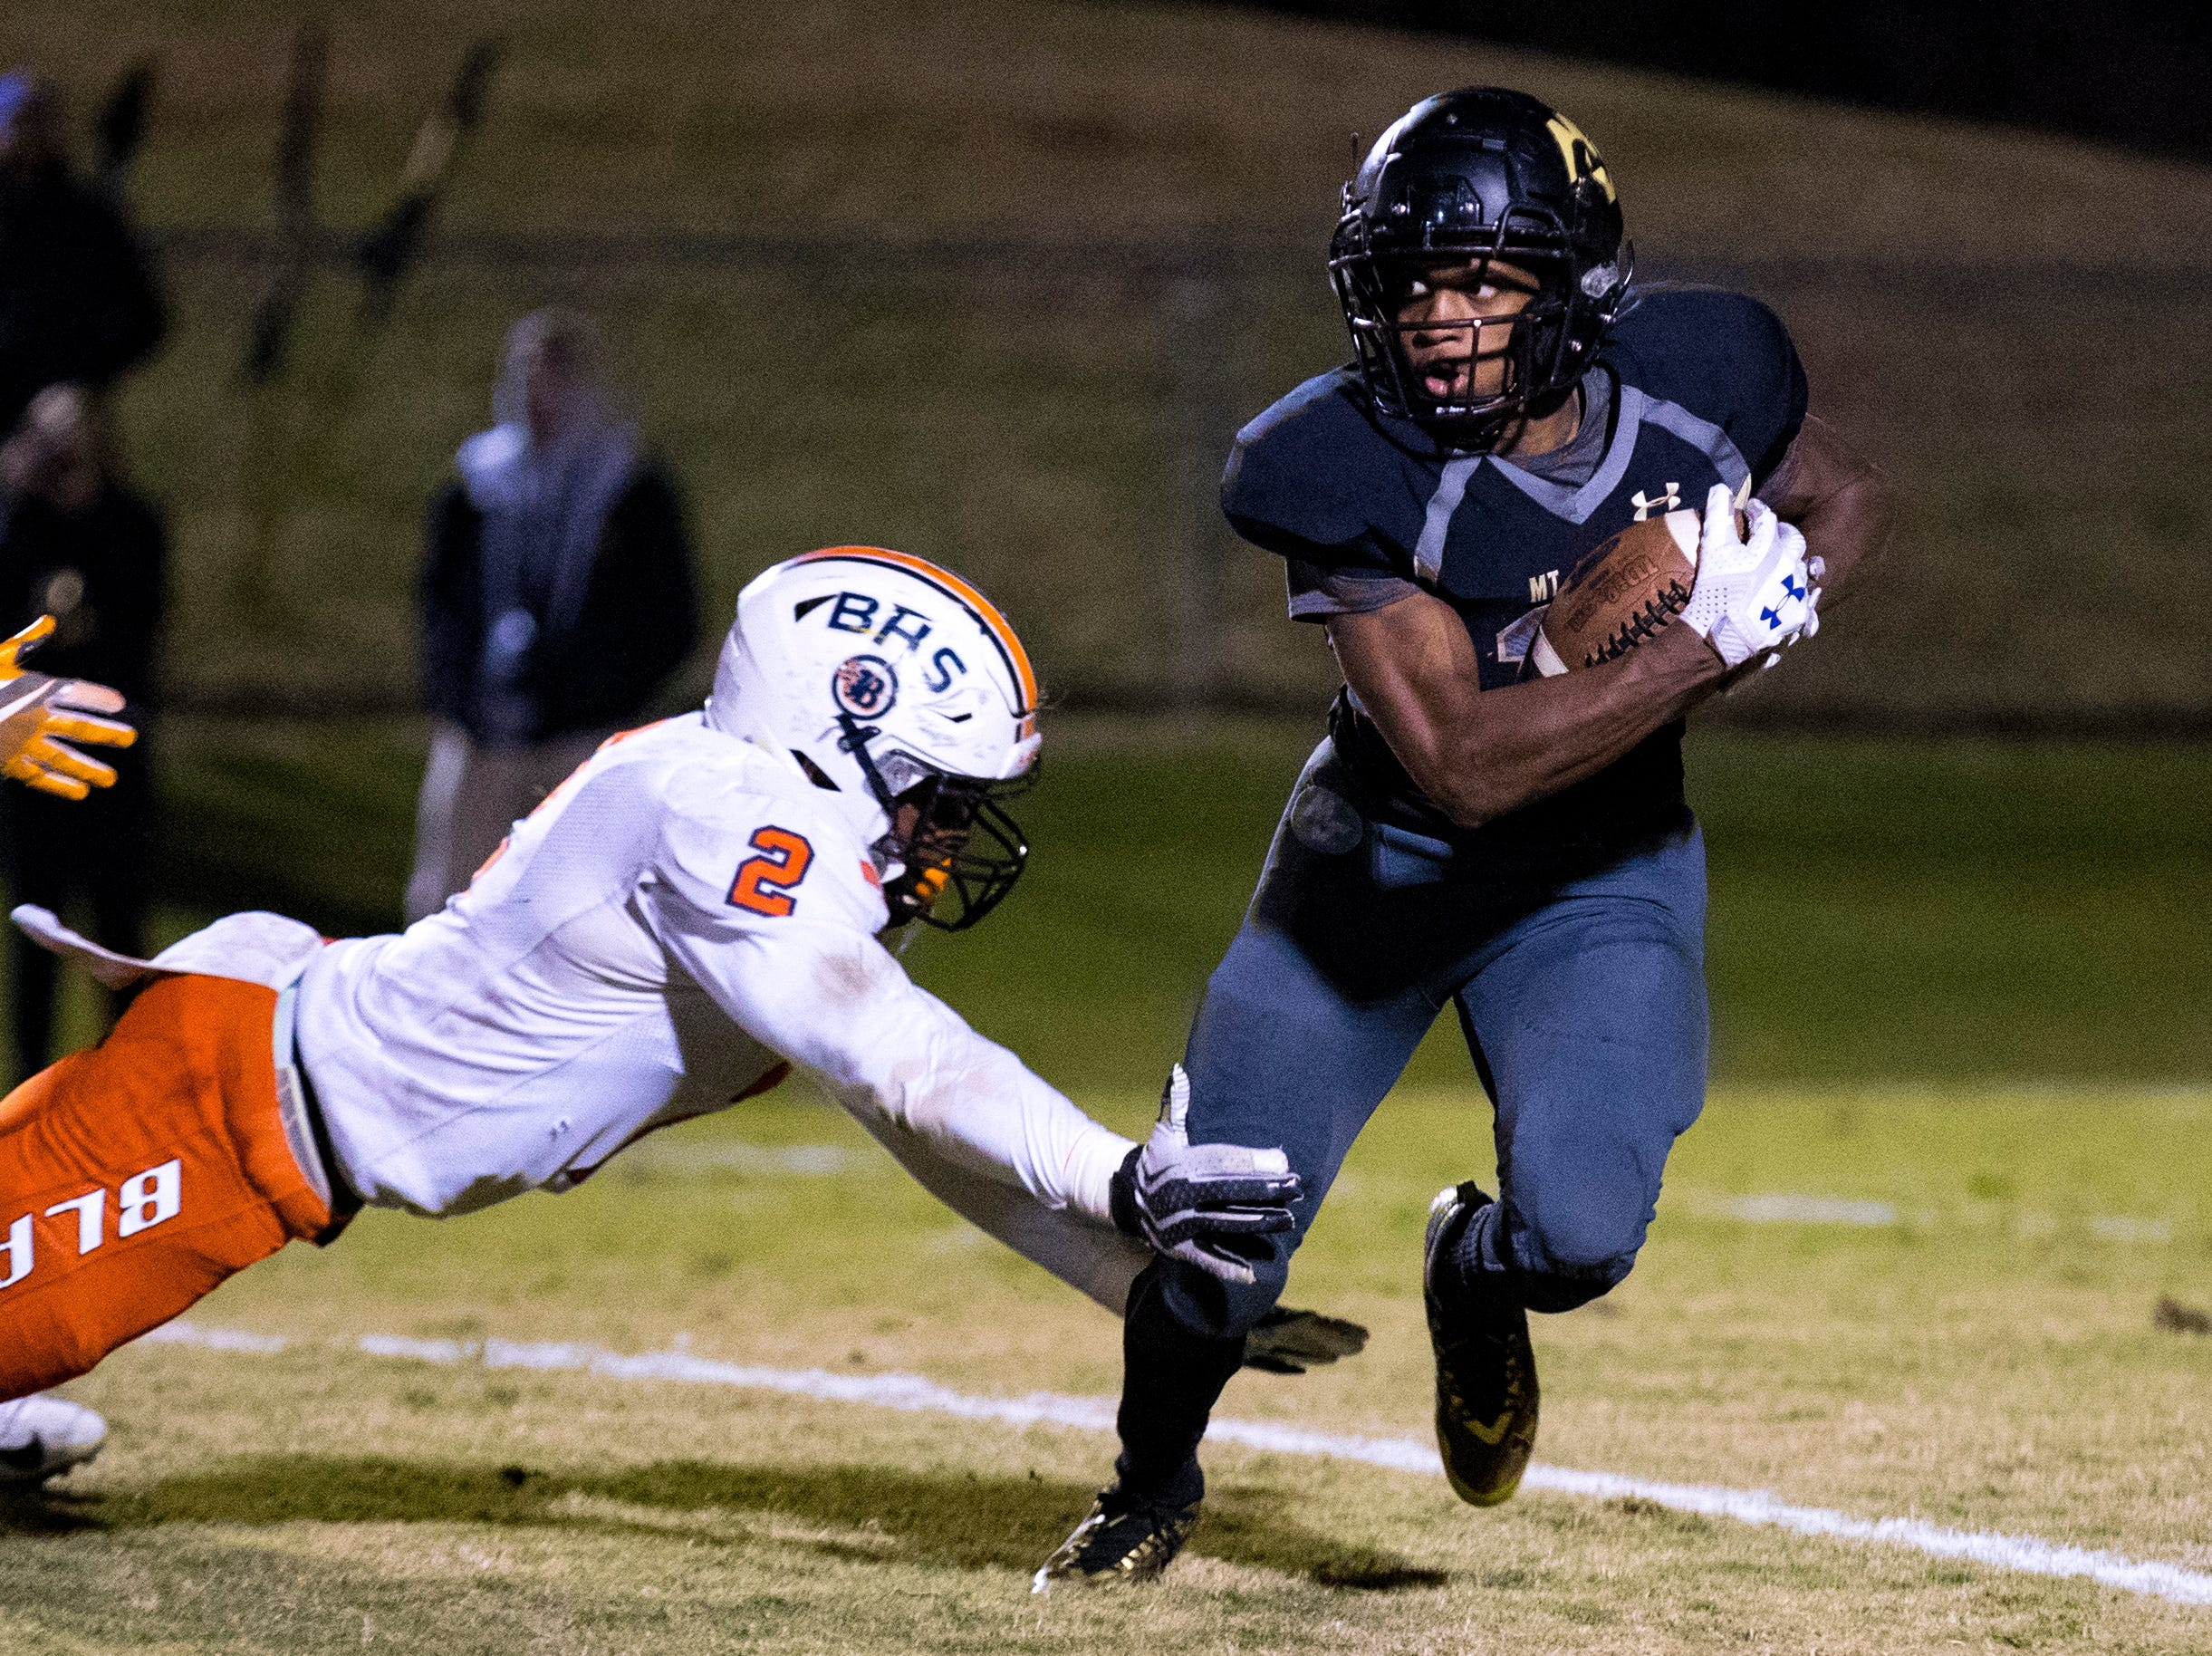 Mt. Juliet's Colby Martin (11) dodges a tackle from Blackman's Khori Williams (2) during Mt. Juliet's game against Blackman at Mt. Juliet High School in Mt. Juliet on Friday, Nov. 9, 2018.